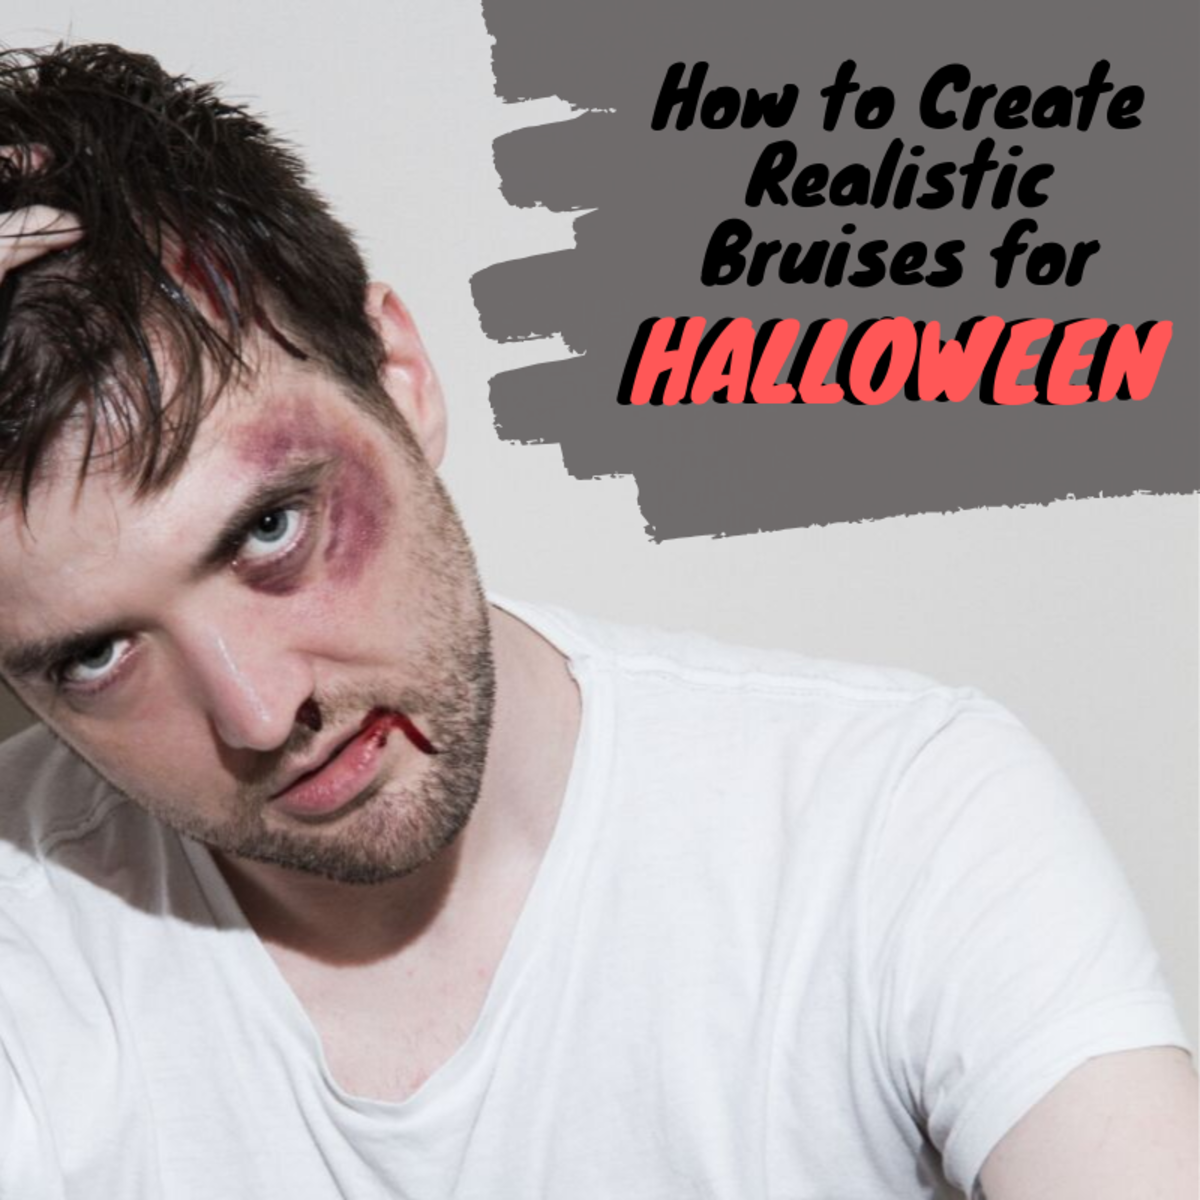 How to Create Realistic Halloween Bruises Using Washable Markers